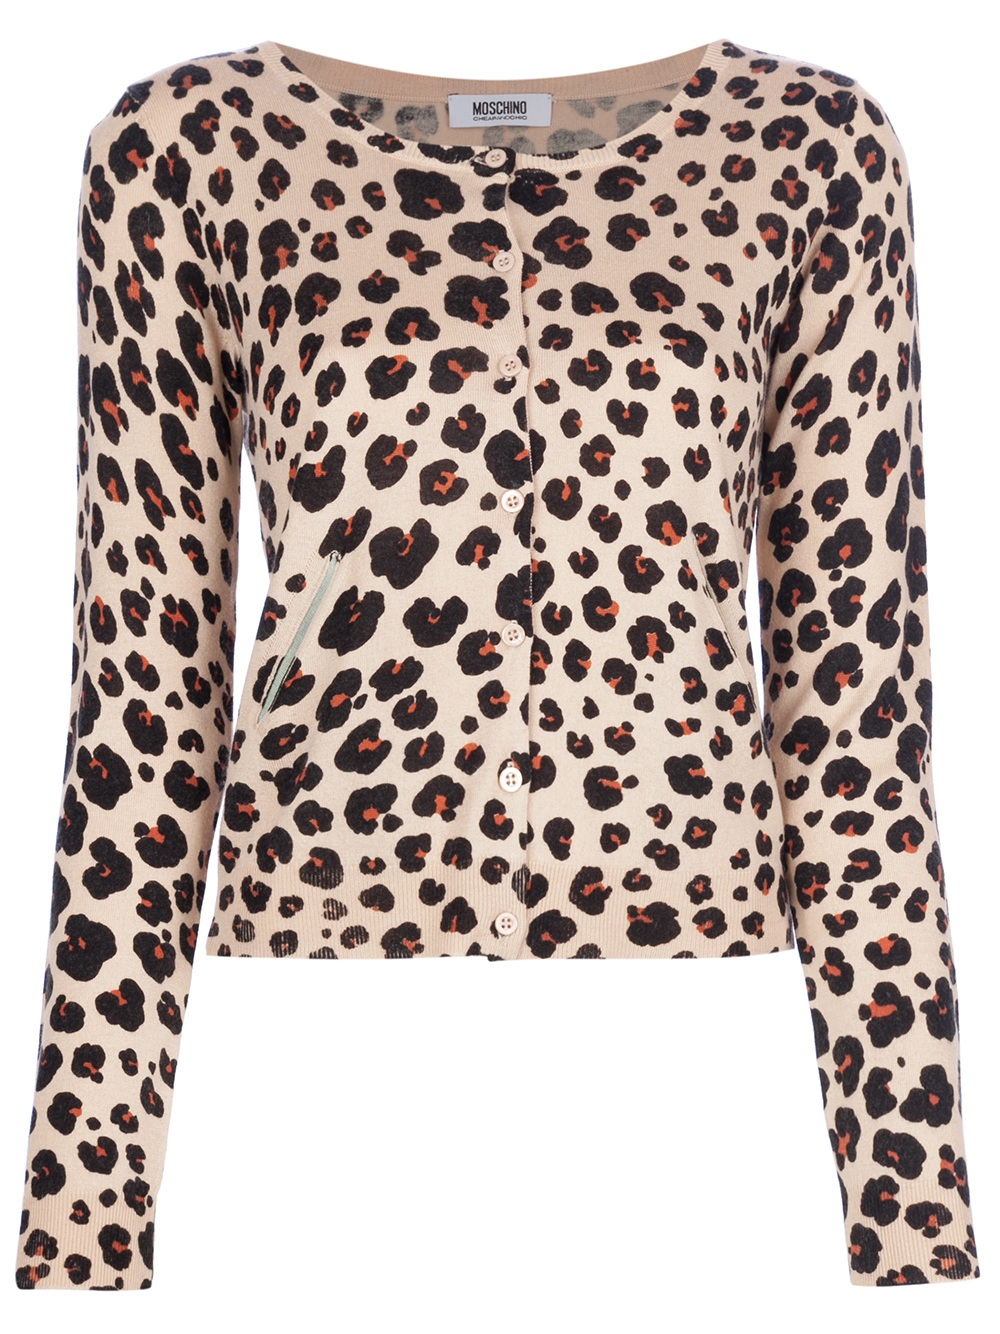 Boutique moschino Leopard Print Cardigan | Lyst